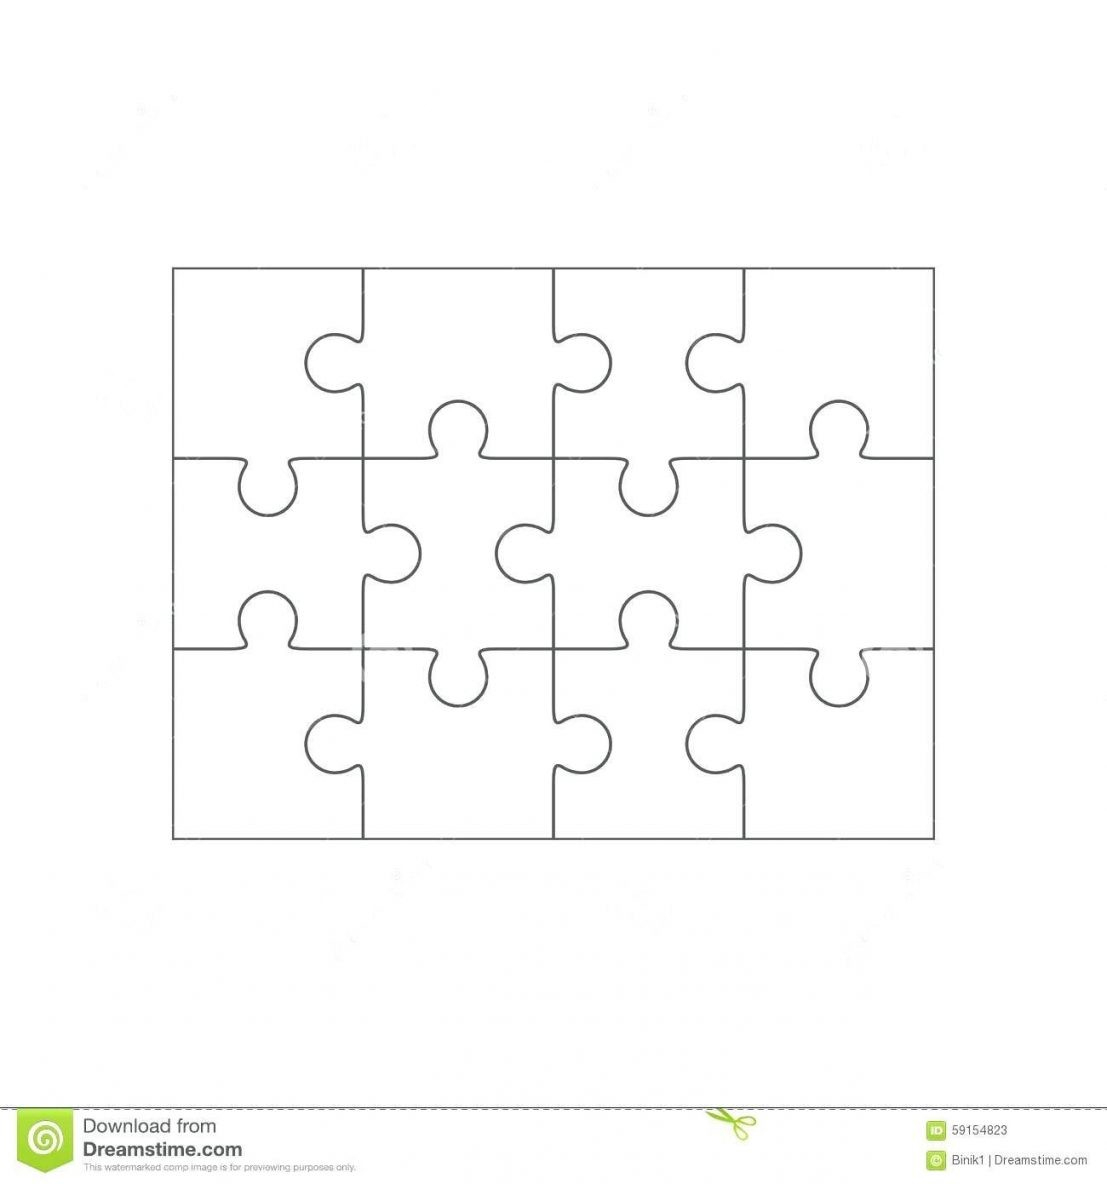 Crossword Puzzle Maker And Word Search Crosswords Printable Jigsaw - Jigsaw Puzzle Maker Free Online Printable